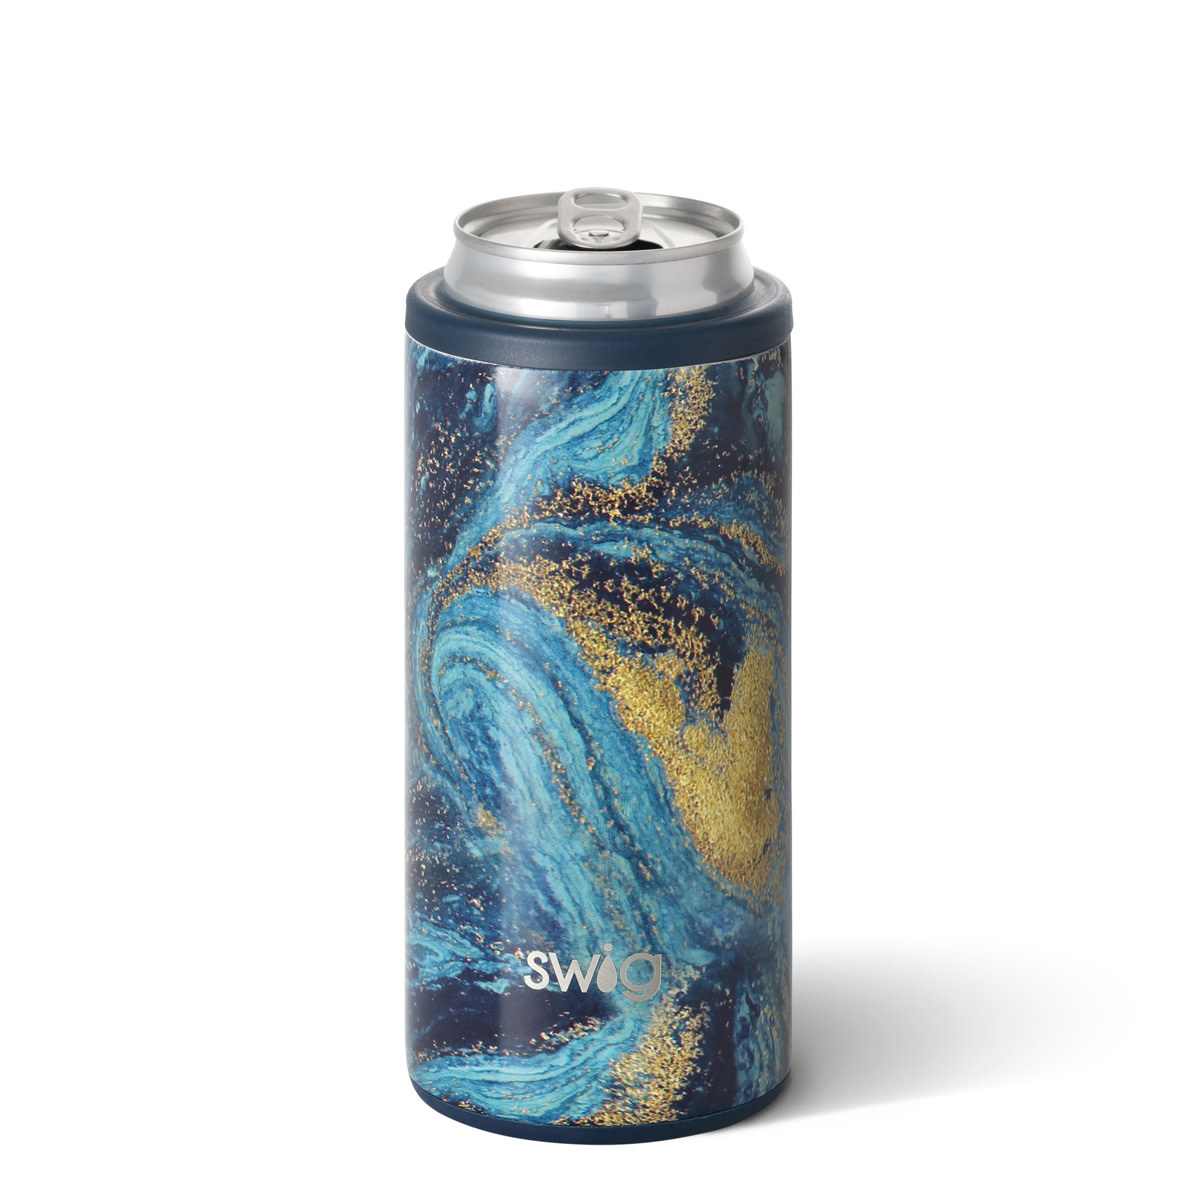 Swig Swig 12oz Skinny Can Cooler-Starry Night